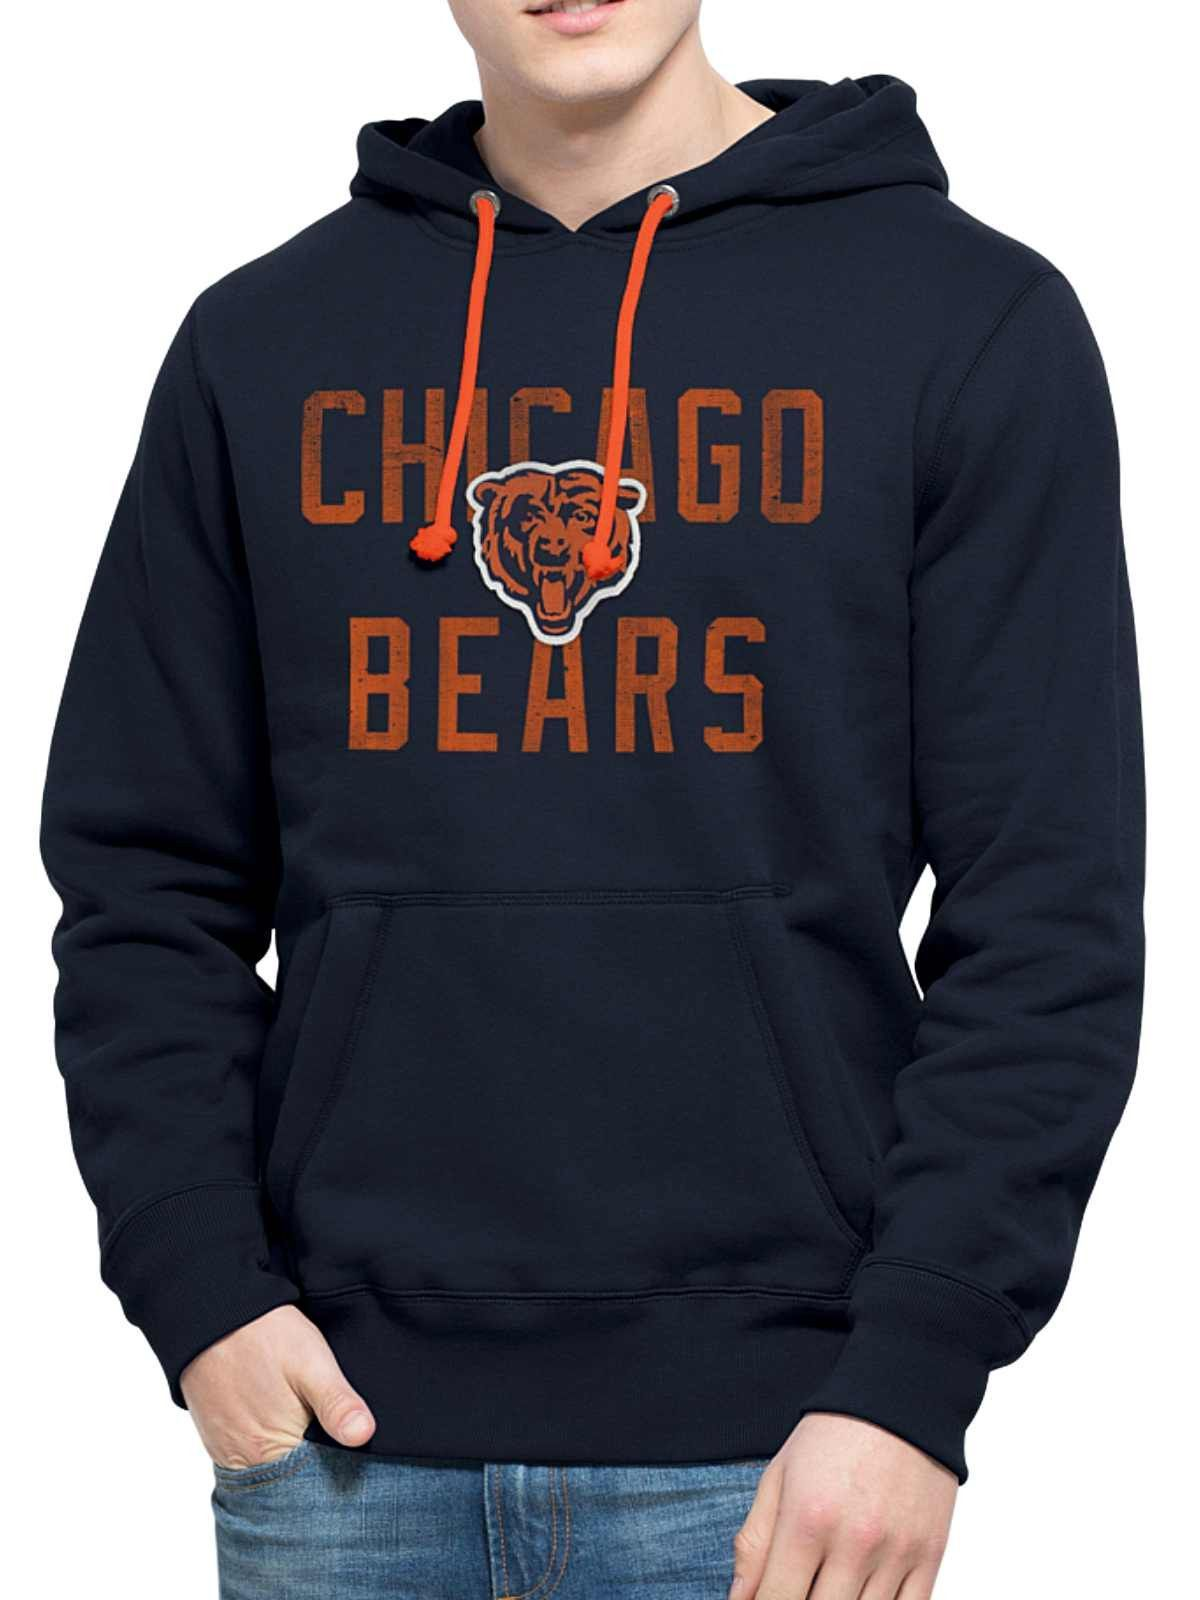 Chicago Bears 47 Brand Navy Cross-Check Pullover Hoodie Sweatshirt ... d87361499